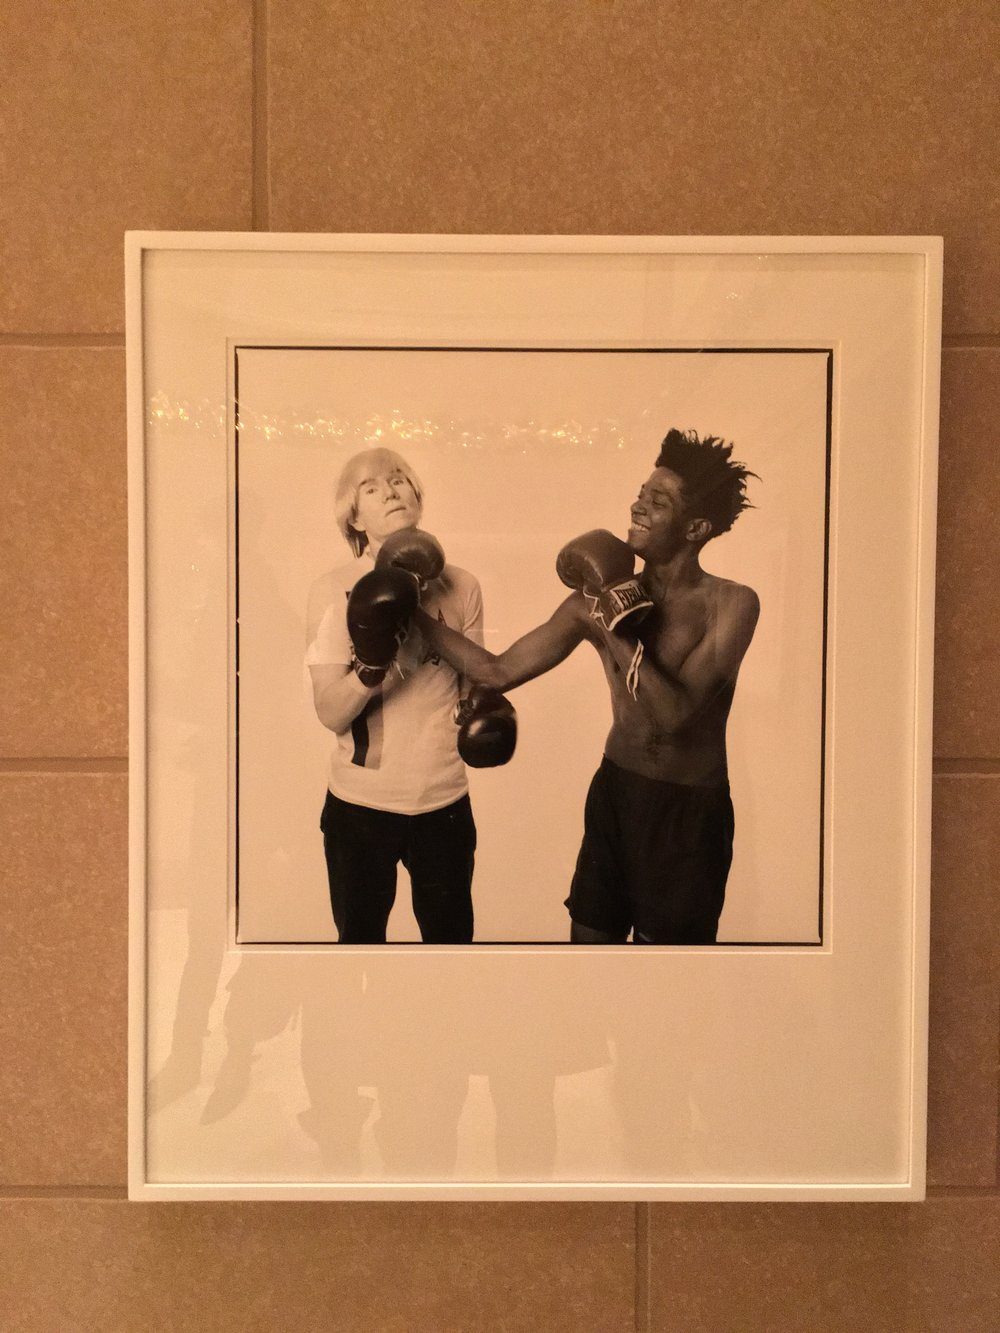 """Andy Warhol and Jean-Michel Basquiat"" by Michael Halsband at The Peninsula Hotel, NYC"